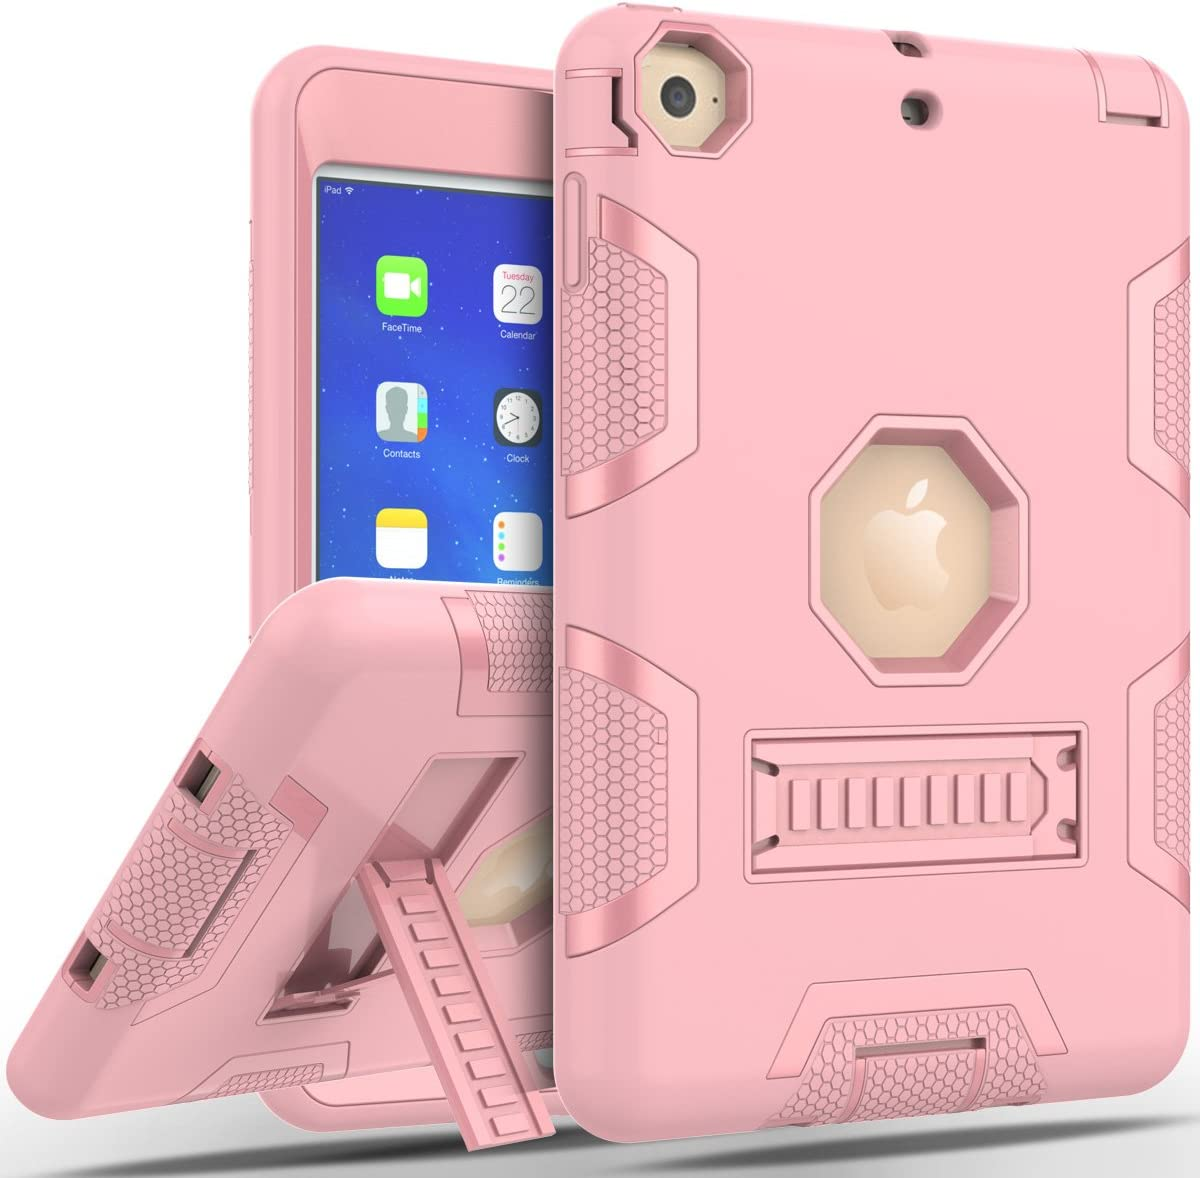 iPad Mini 1/2/3 Case, iPad 2/3/4 Case, WeLoveCase Heavy Duty Defender Case Cover with Stand Function Anti-Slip Shockproof Rugged Bumper Hybrid Protective Case for iPad Rose Gold (iPad Mini 1/2/3)